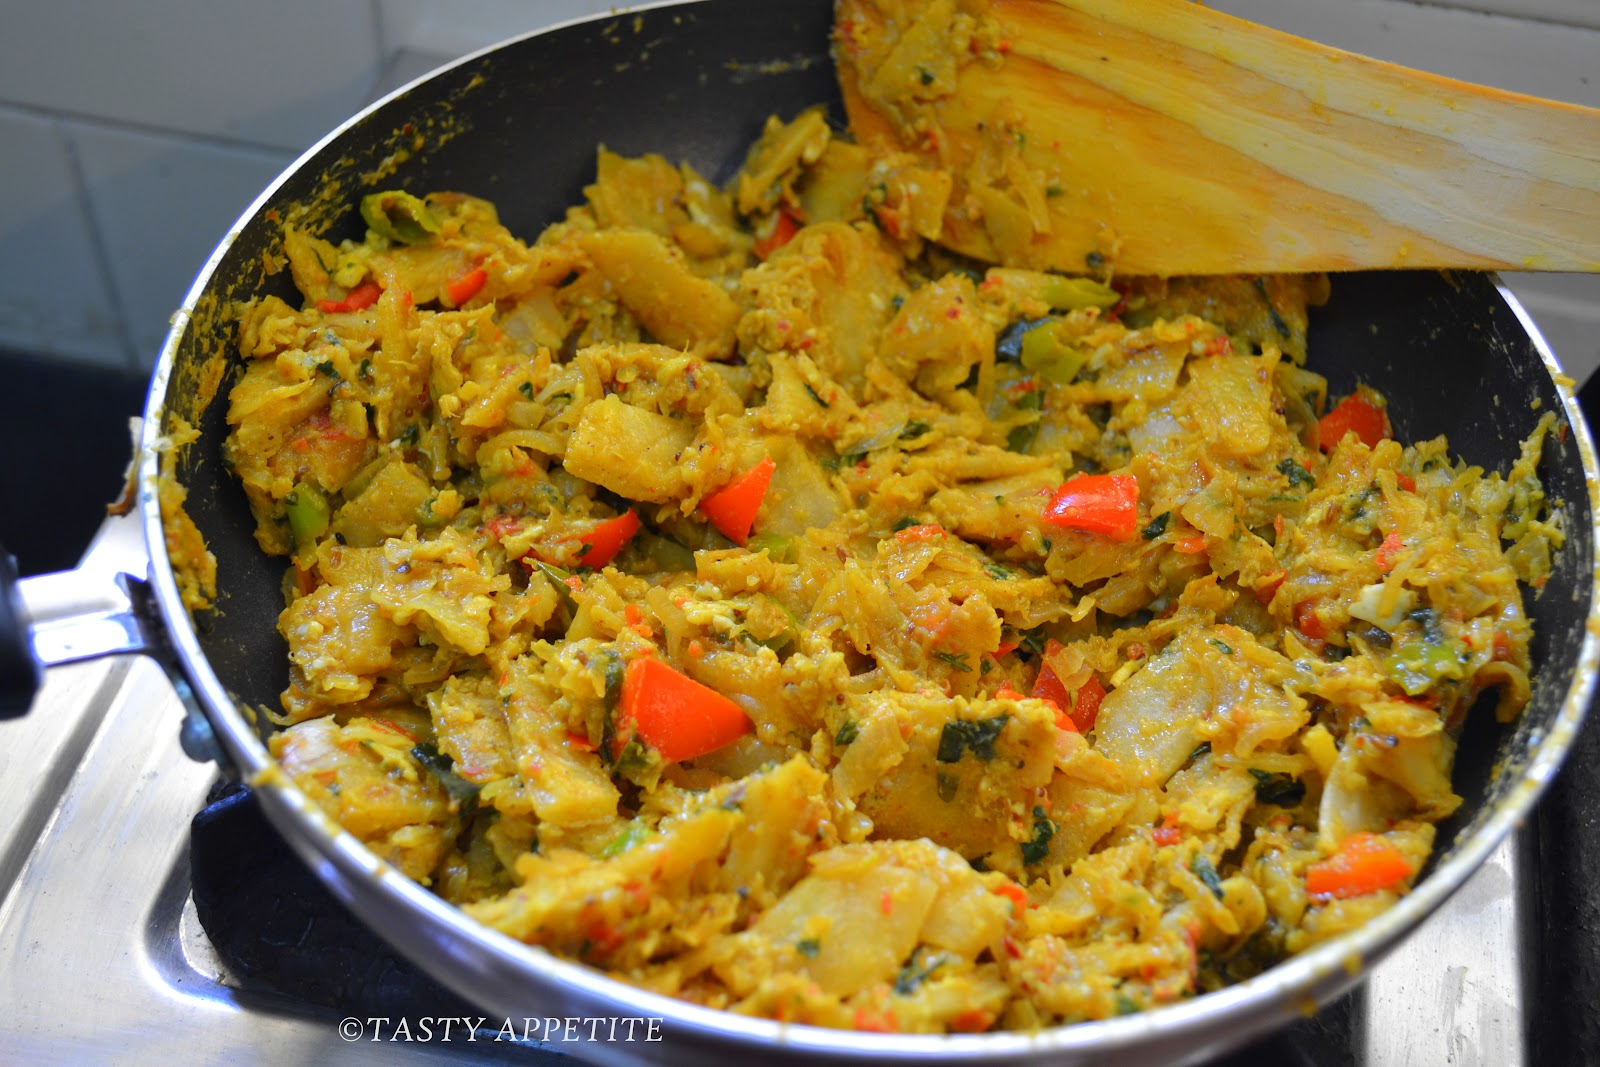 Now Bring The Flame To Low Medium And Cook The Eggs Together With Minced Parotta Until The Masala Turns Dry